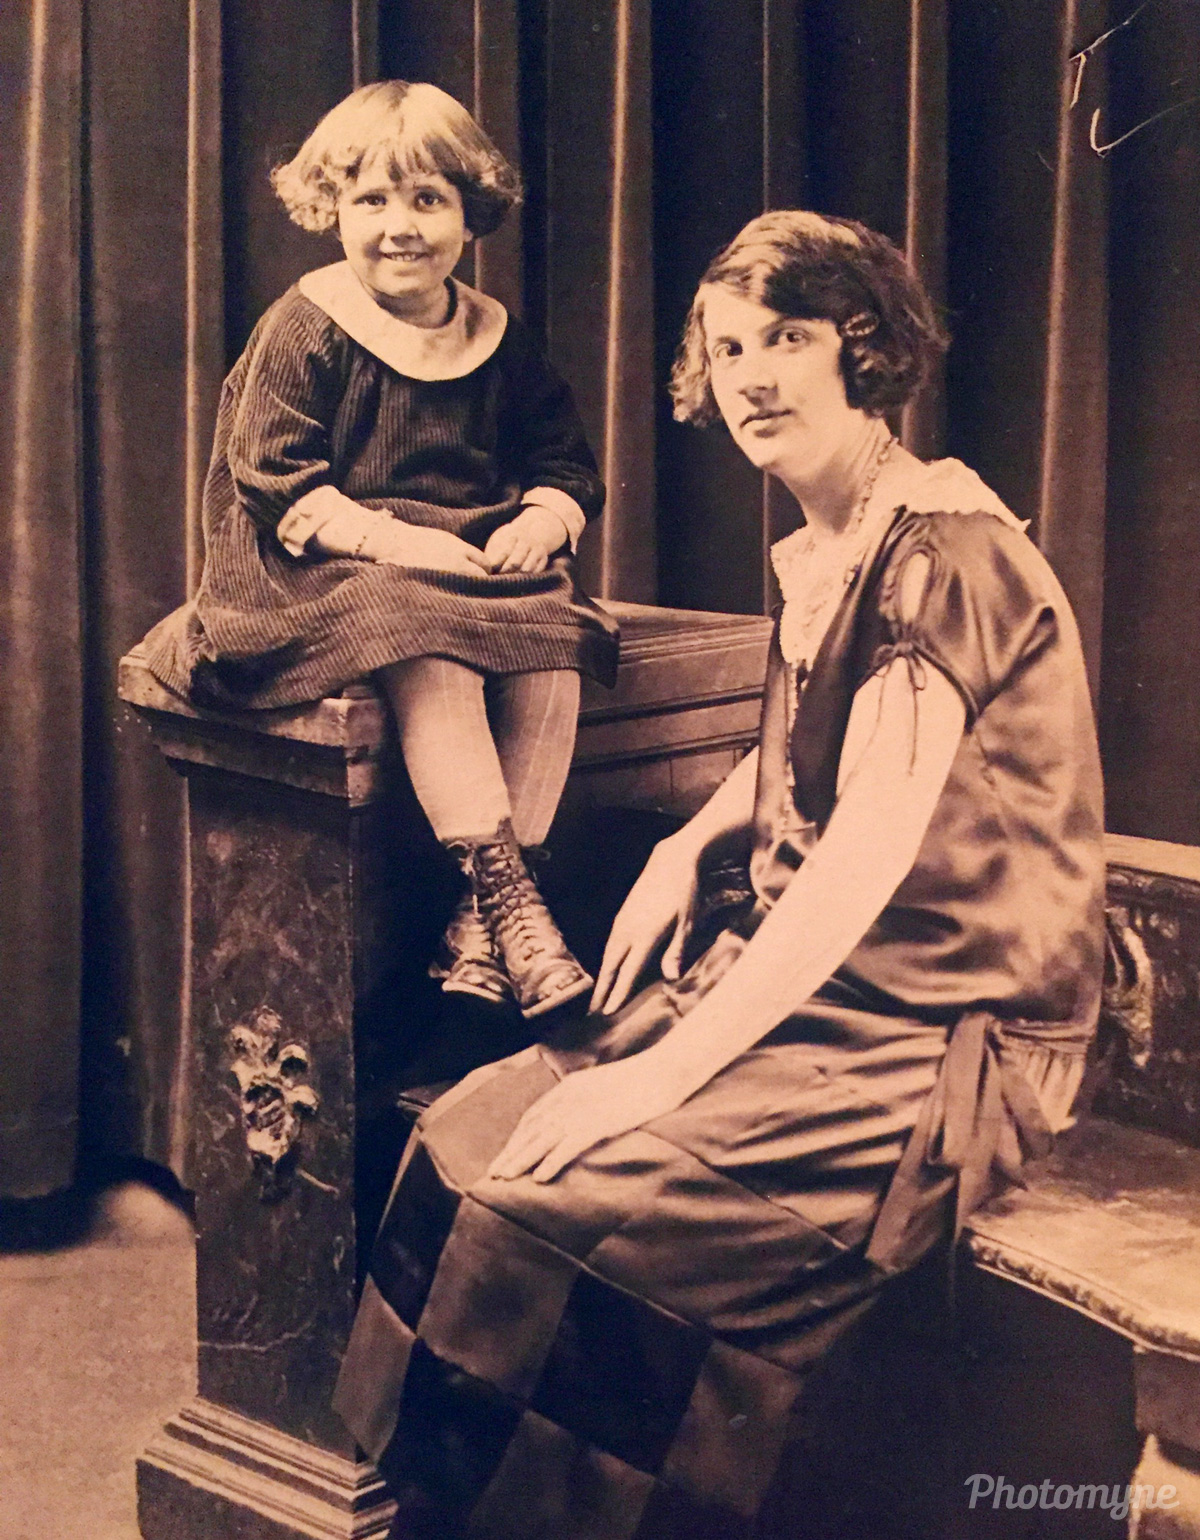 My Mother with her Mother. Mom raised 13 children. She was a great Mother. She taught us good values! Grandma Goldie was very strict but we loved her, 1925